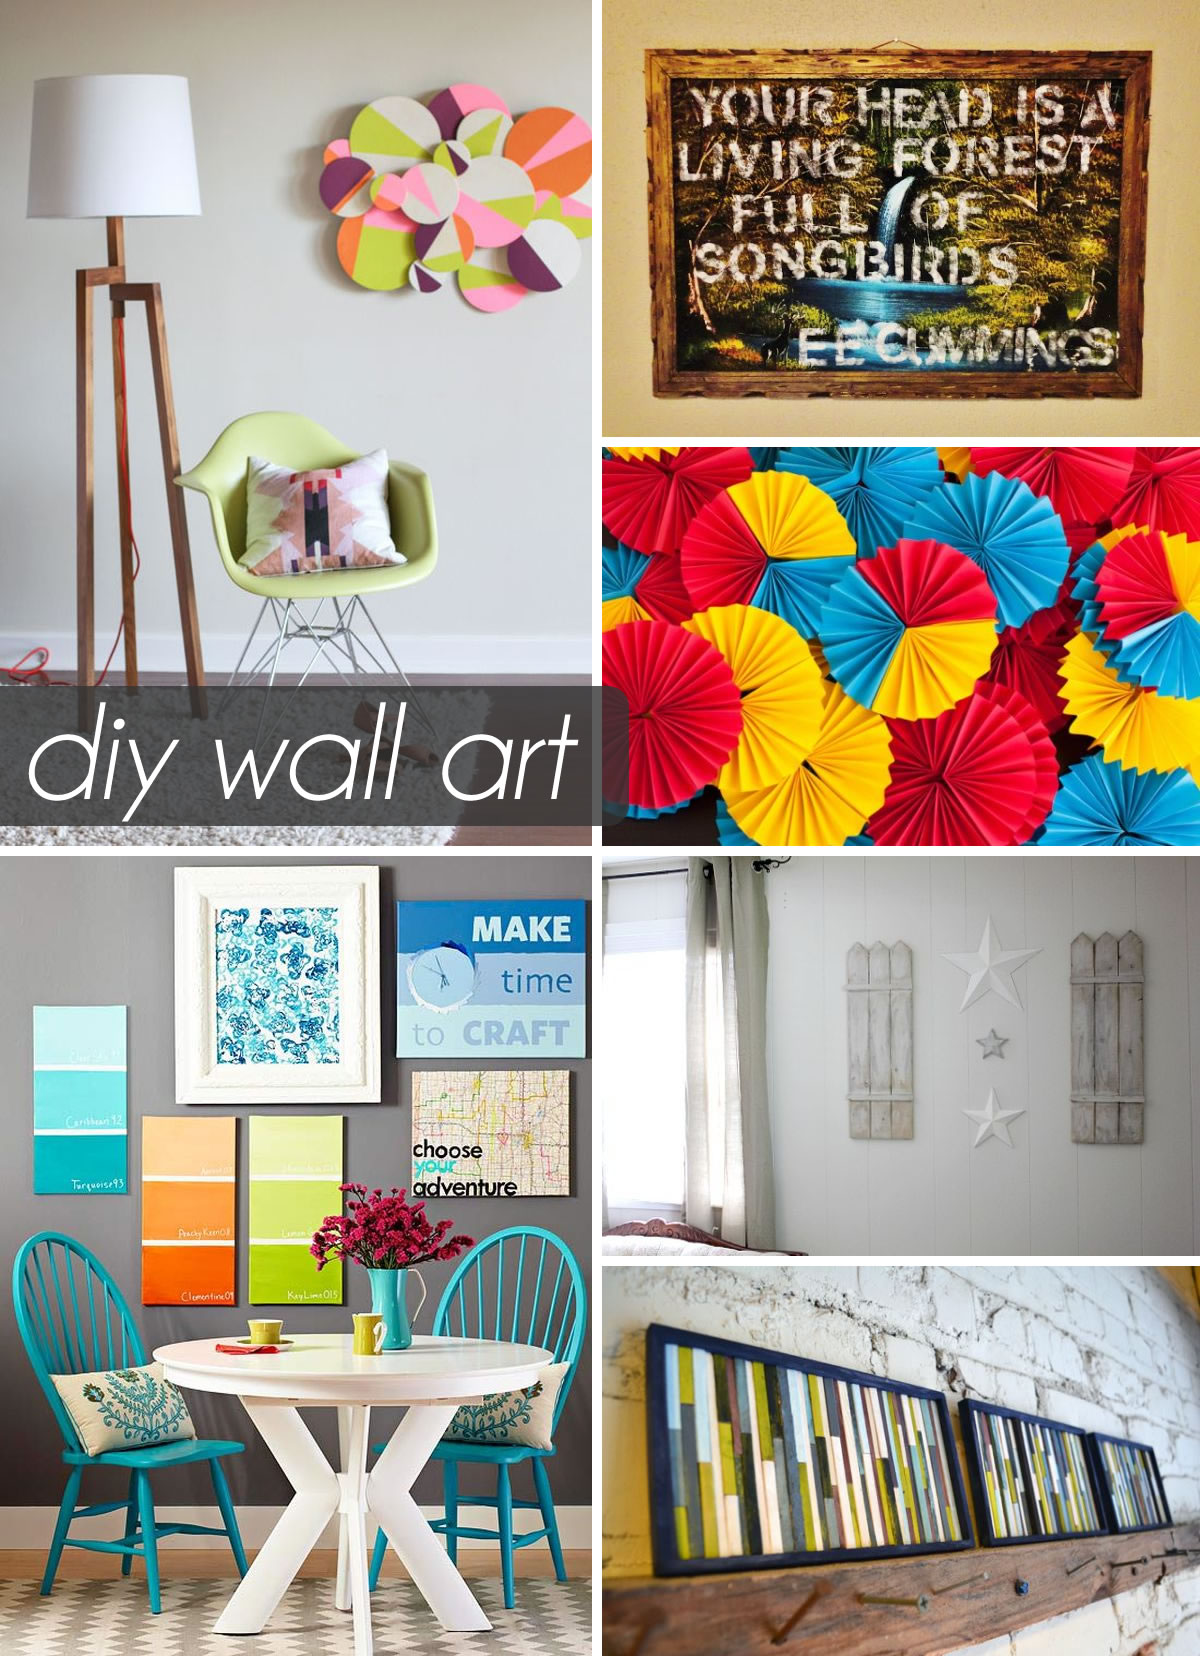 11 Beautiful DIY Wall Art Ideas For Your Home